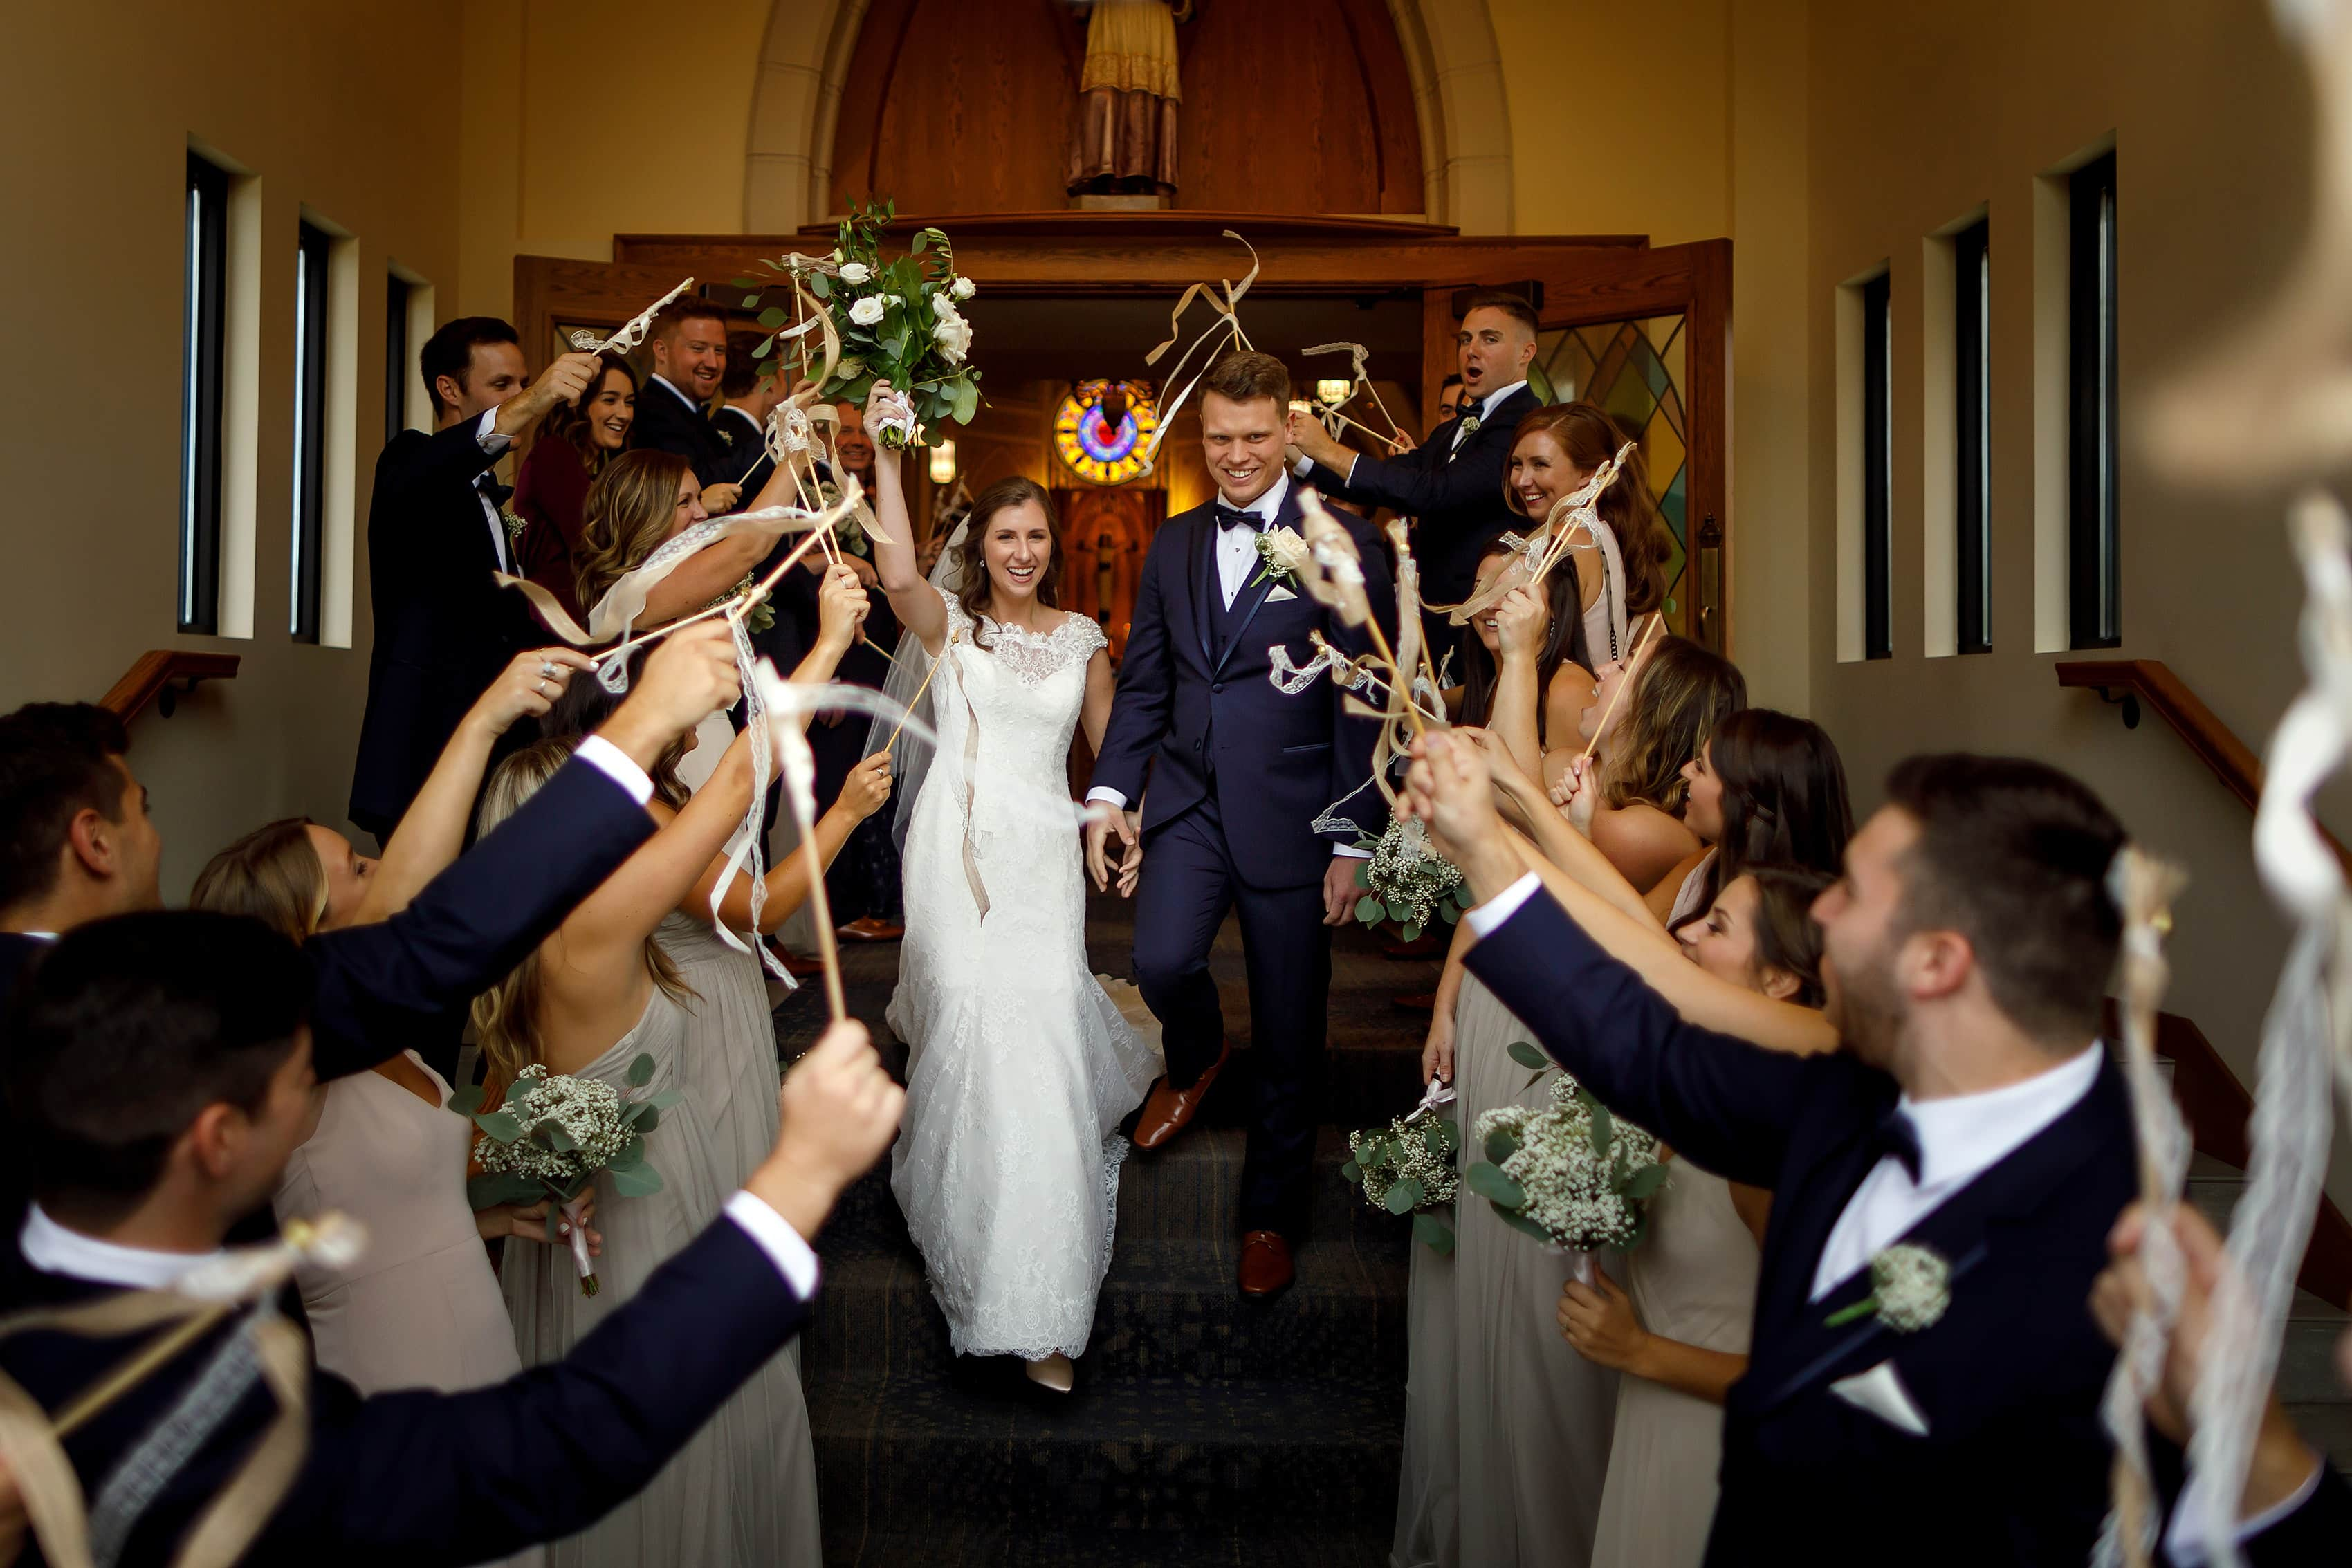 Bride and groom walk out to cheering wedding party after ceremony at St. Francis Church in Lake Geneva, Wisconsin